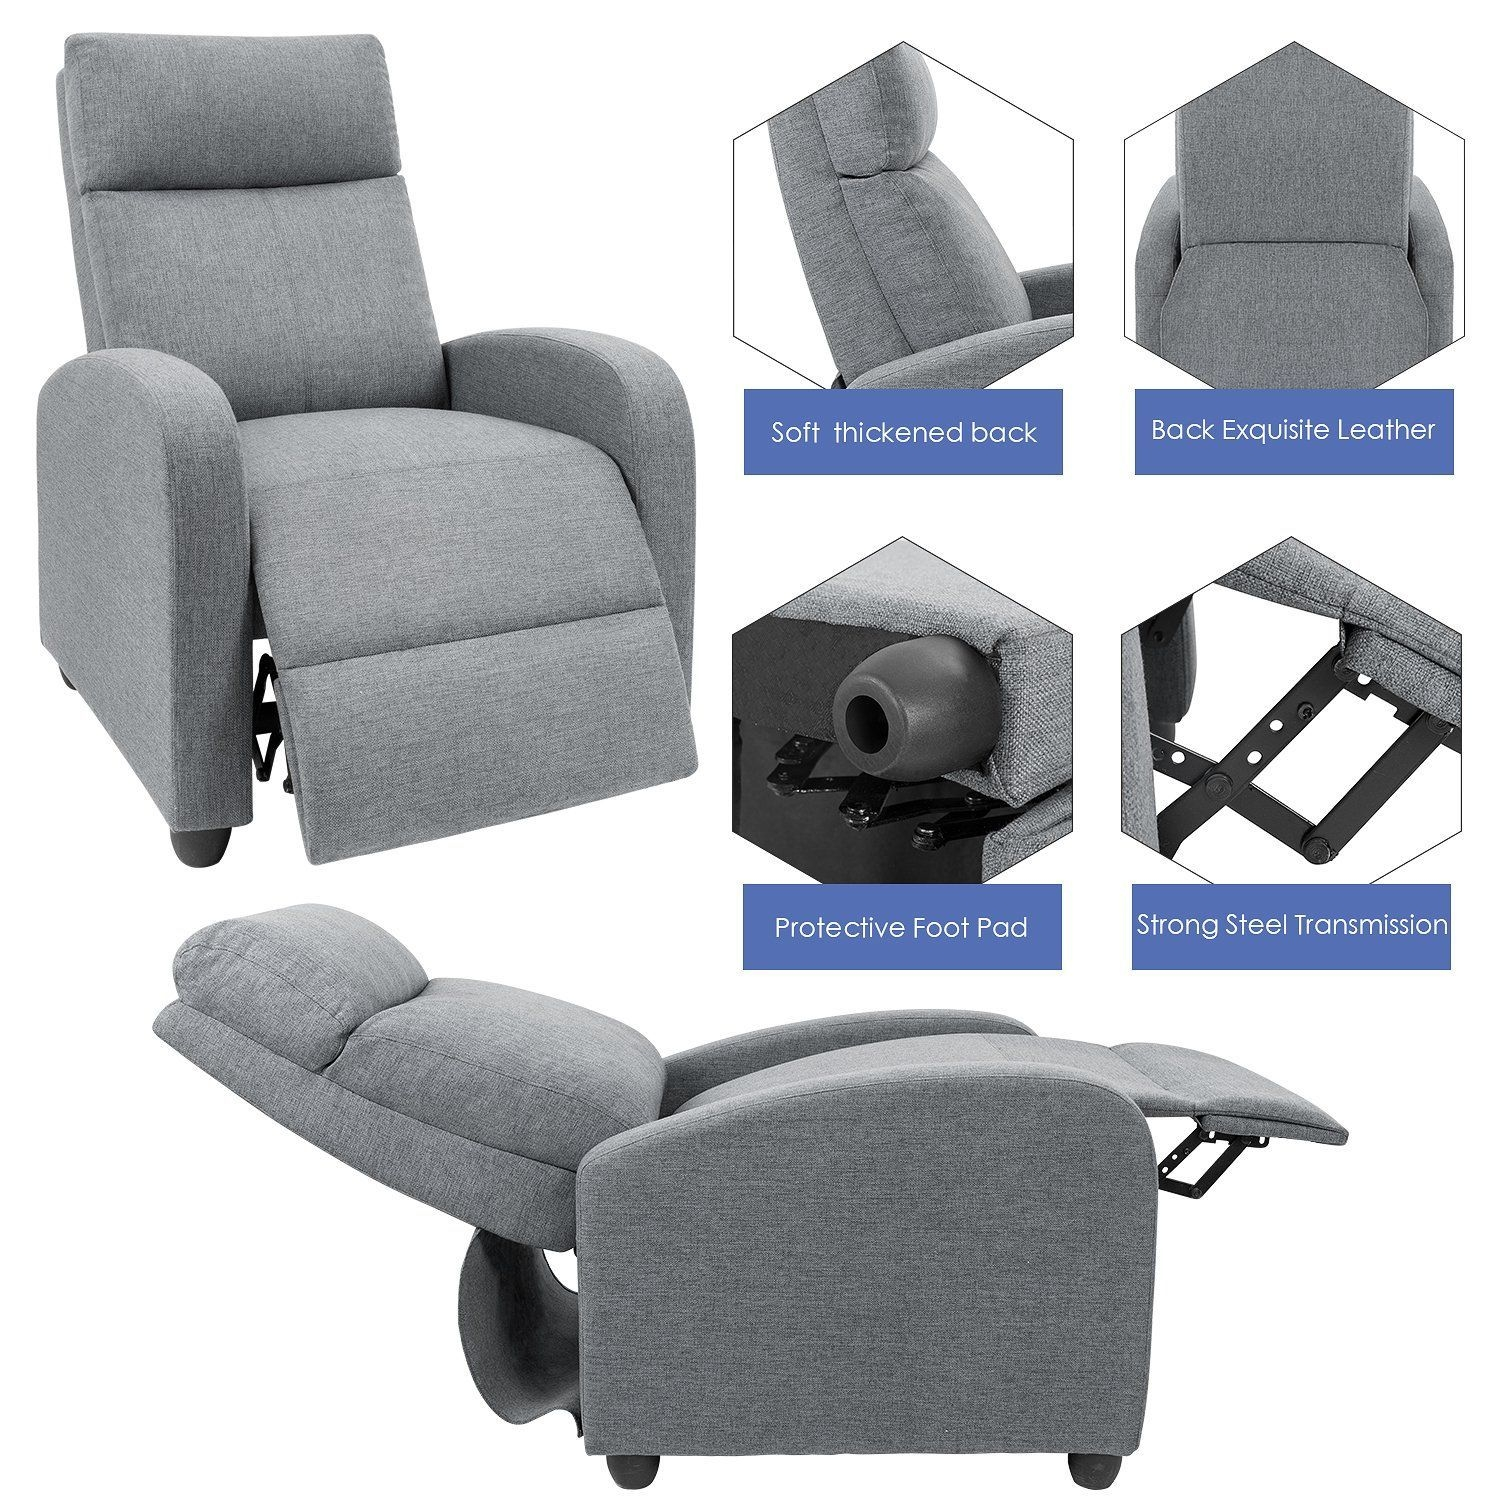 Devoko Adjustable Recliner Single Chair Fabric Modern Living Room Chair Thicker Cushion